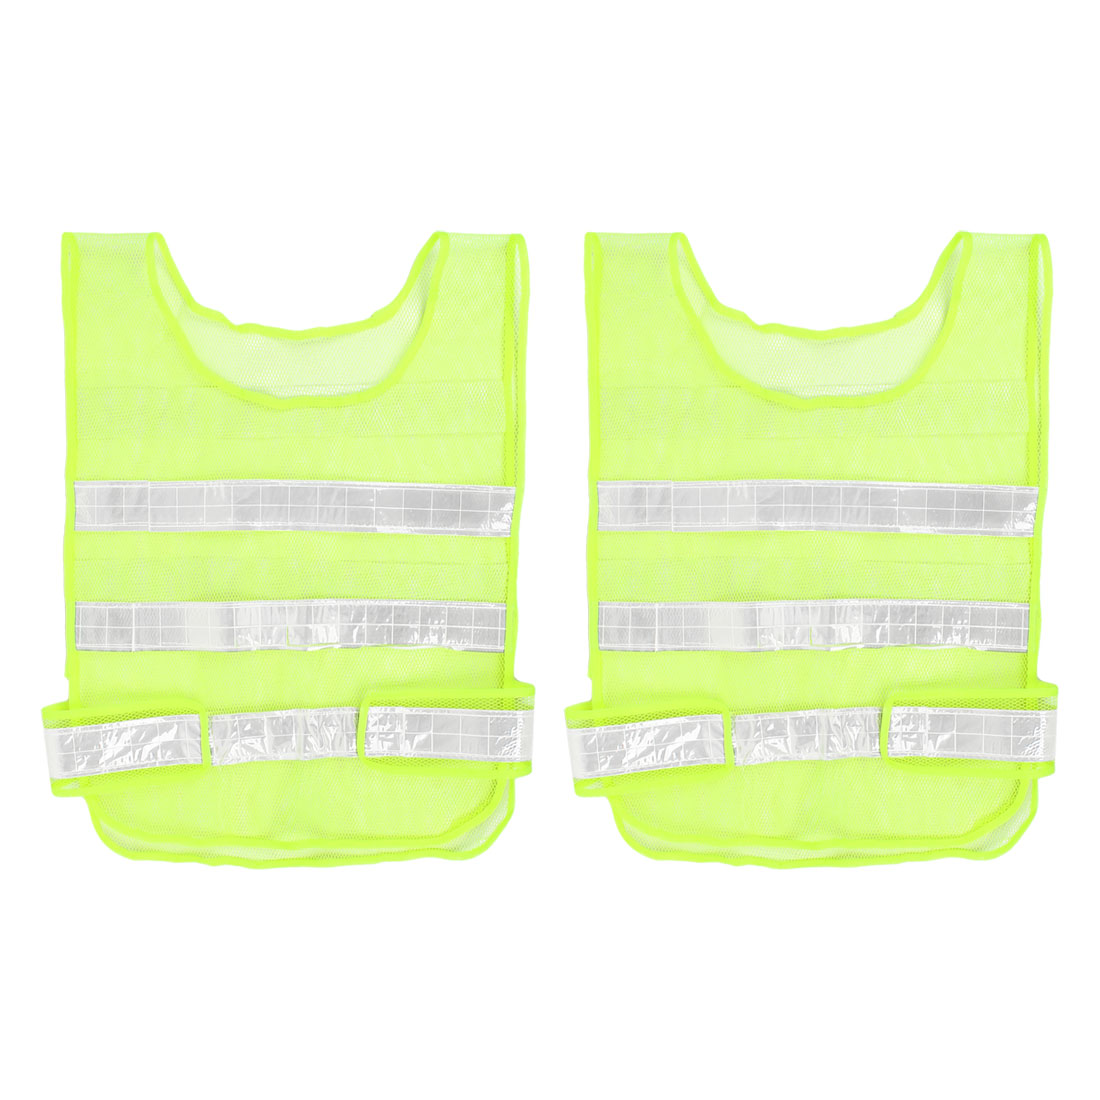 Visibility Reflective Meshy Traffic Security Waistcoat Vest 2 Pcs